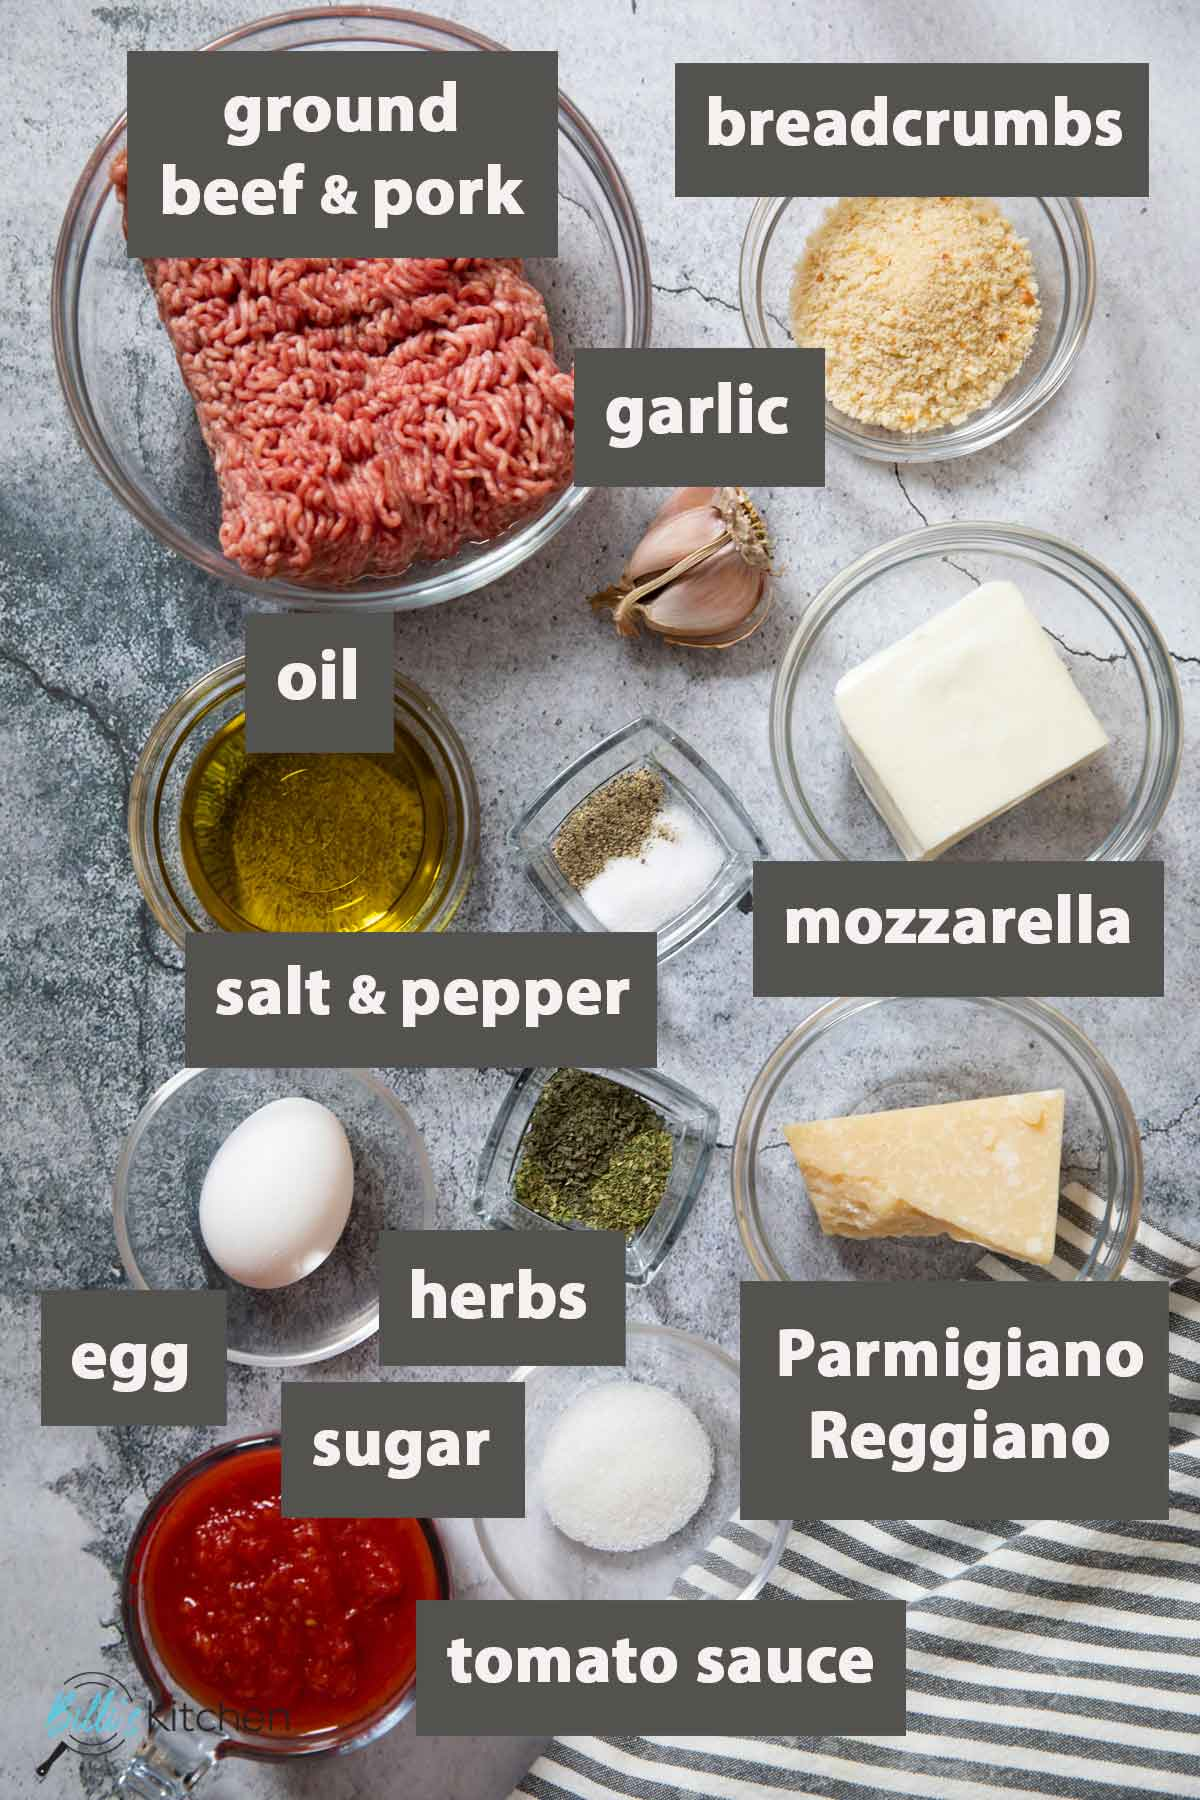 An image showing all the ingredients you need to prepare baked meatballs in tomato sauce.